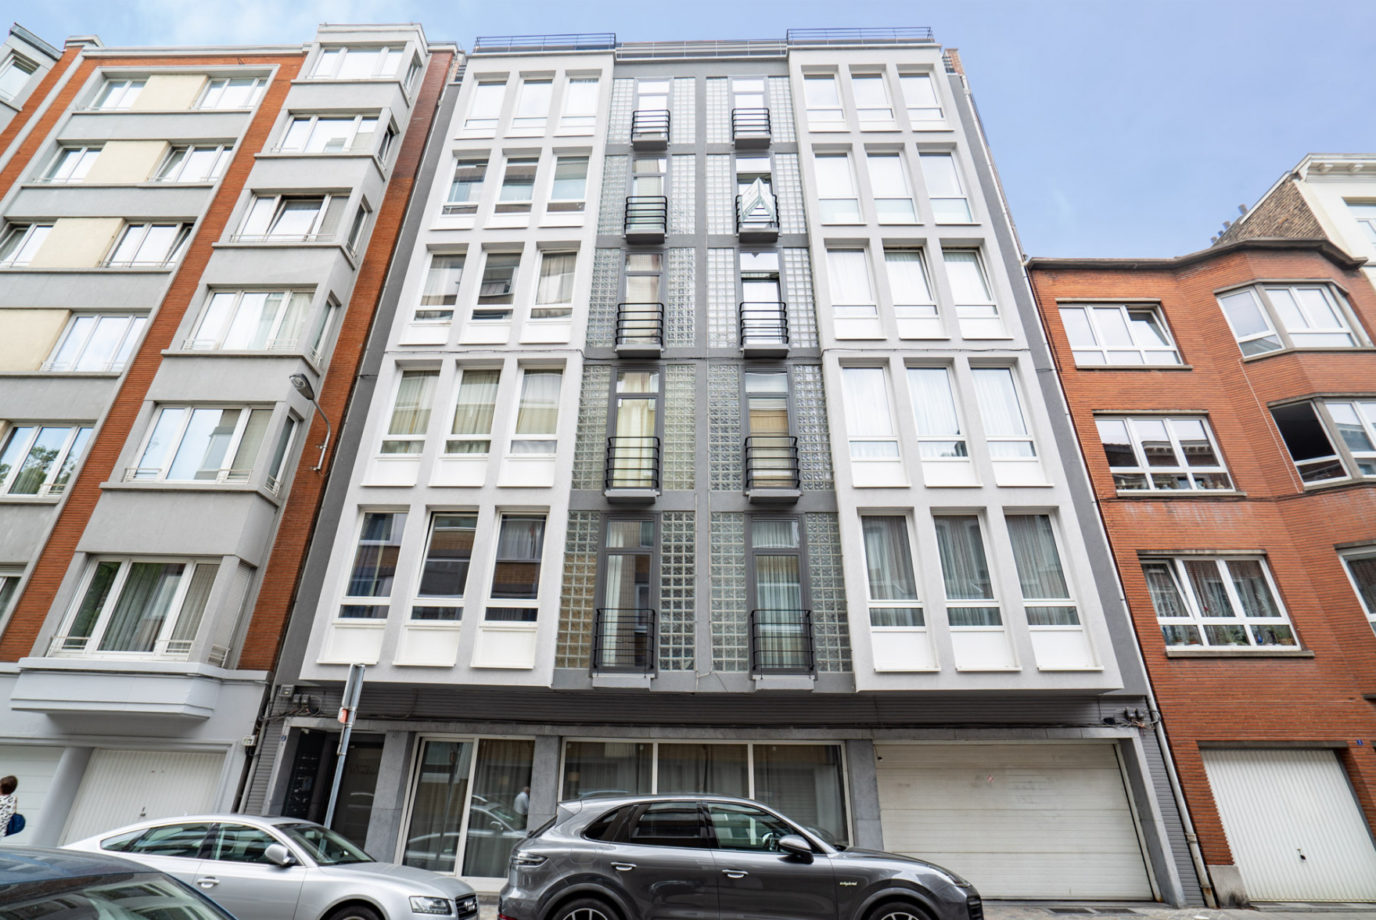 Welcome at home - agence immobilière - liège - appartement à vendre - 225 000€